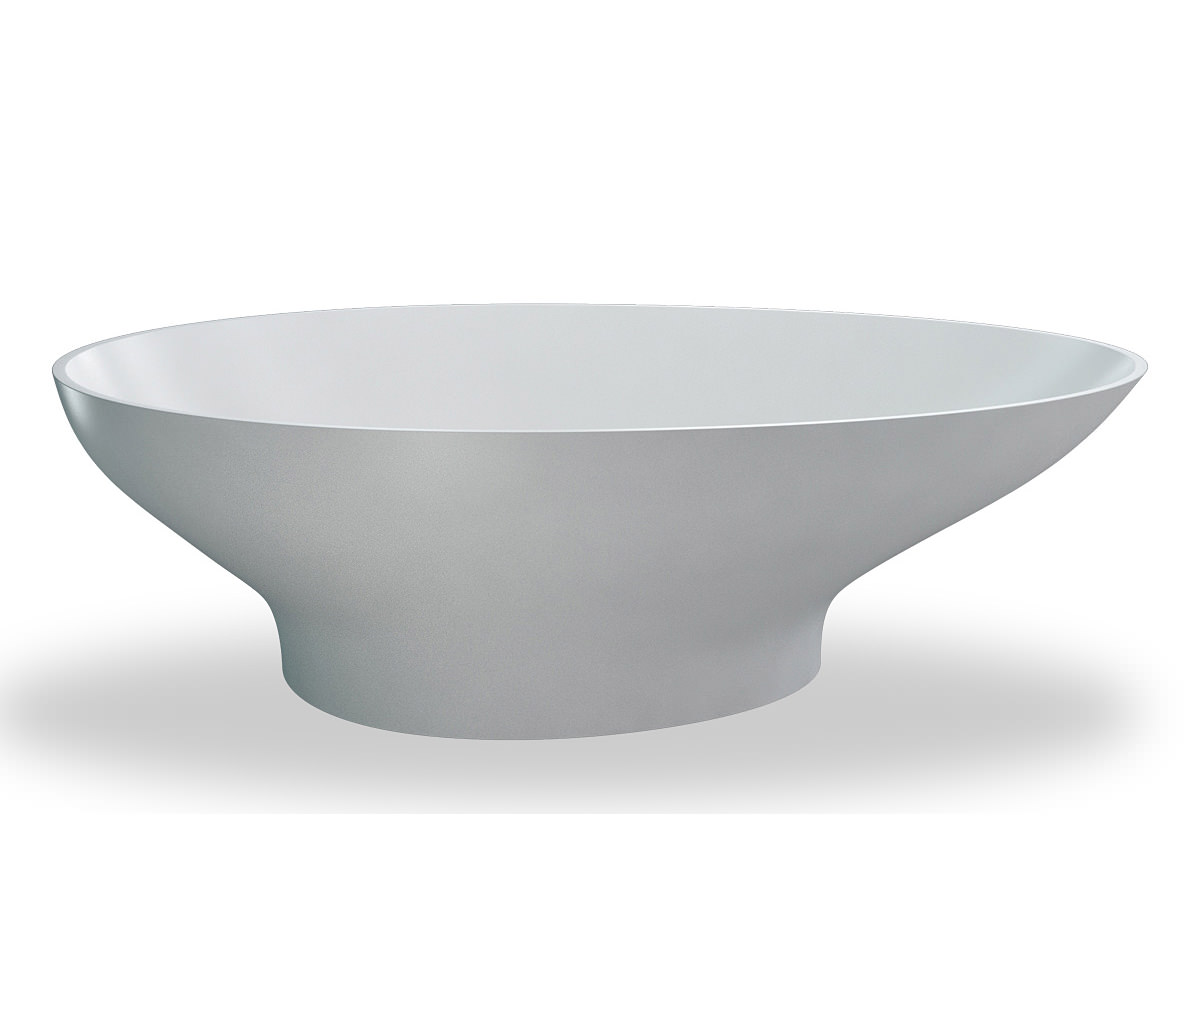 Clearwater Teardrop Freestanding Large Modern Oval Bath